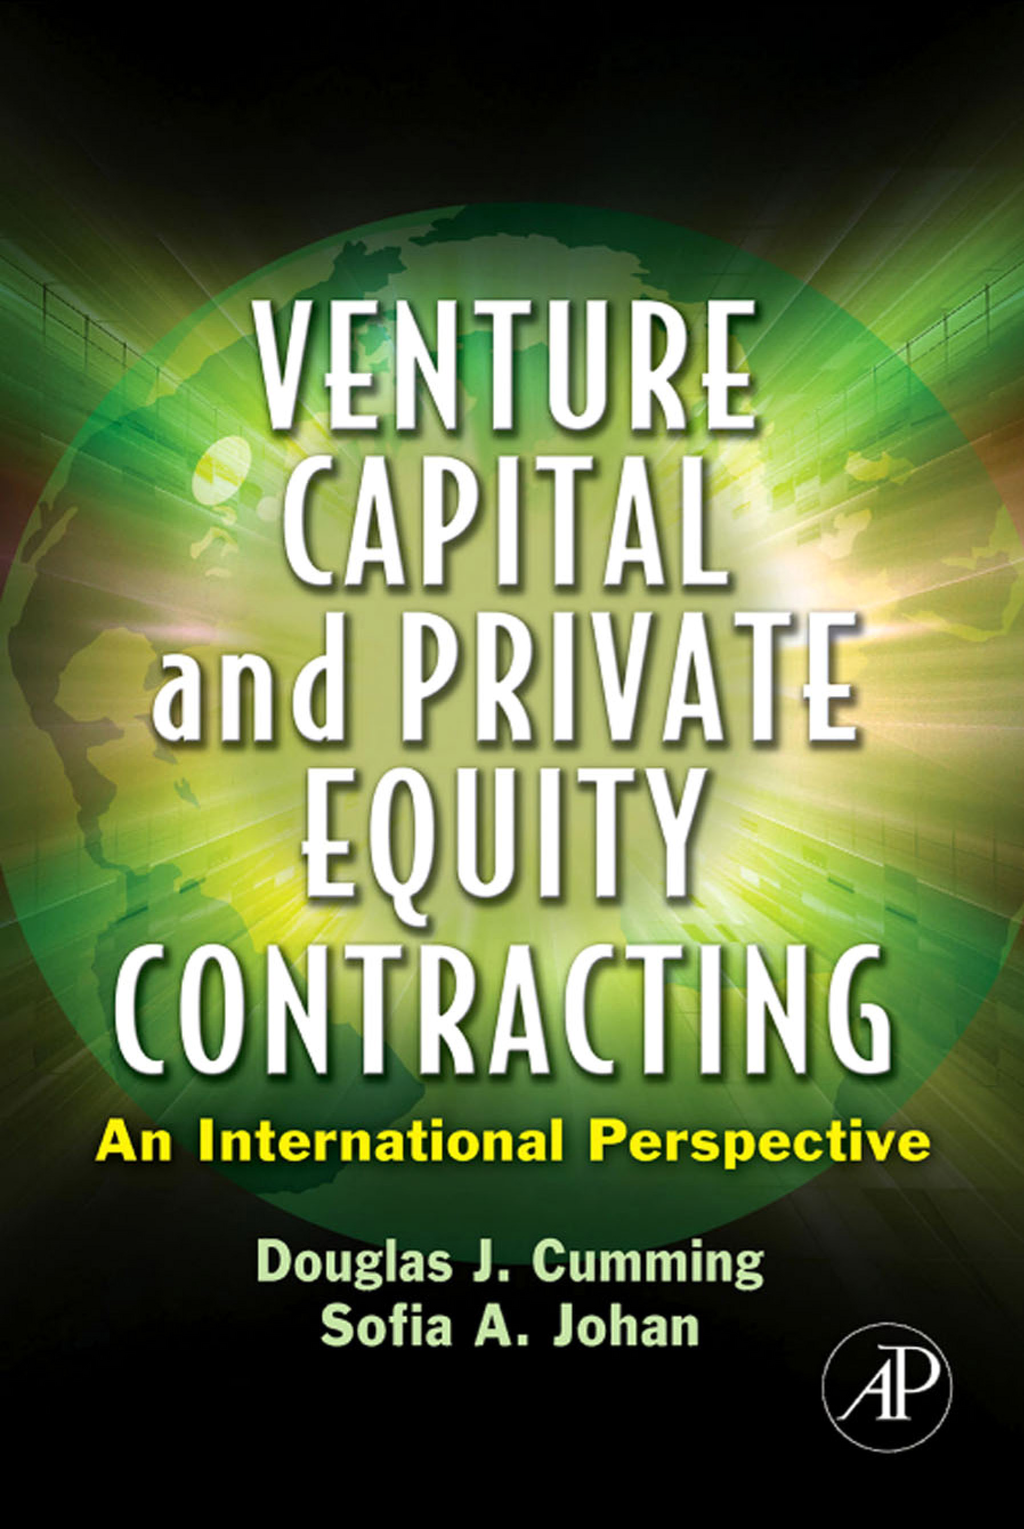 Venture Capital and Private Equity Contracting By: Douglas J. Cumming,Sofia A. Johan